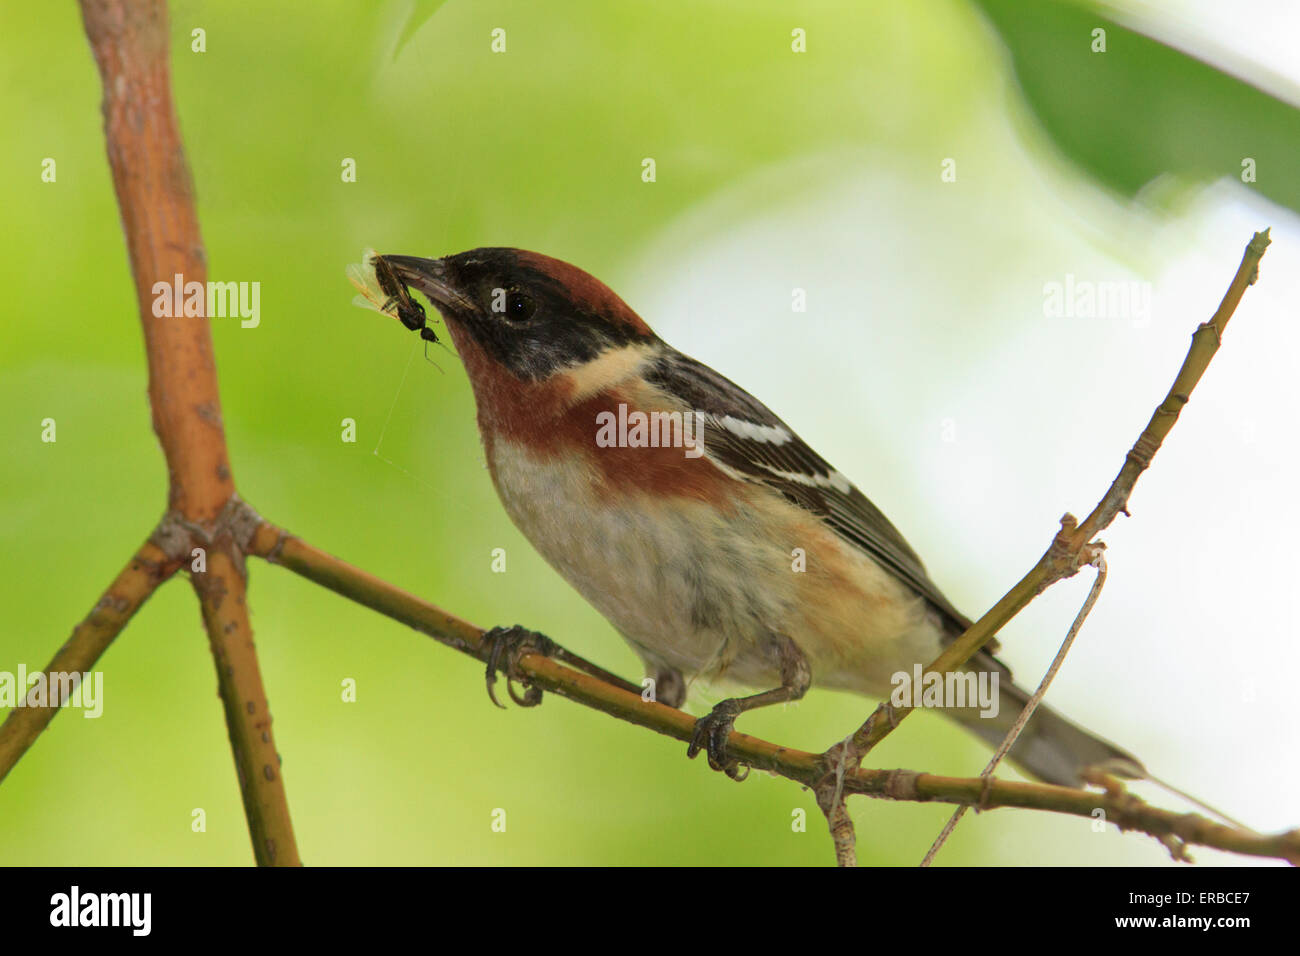 Bay-breasted Warbler   (Setophaga castanea) with an ant in its beak, during the Spring migration. - Stock Image